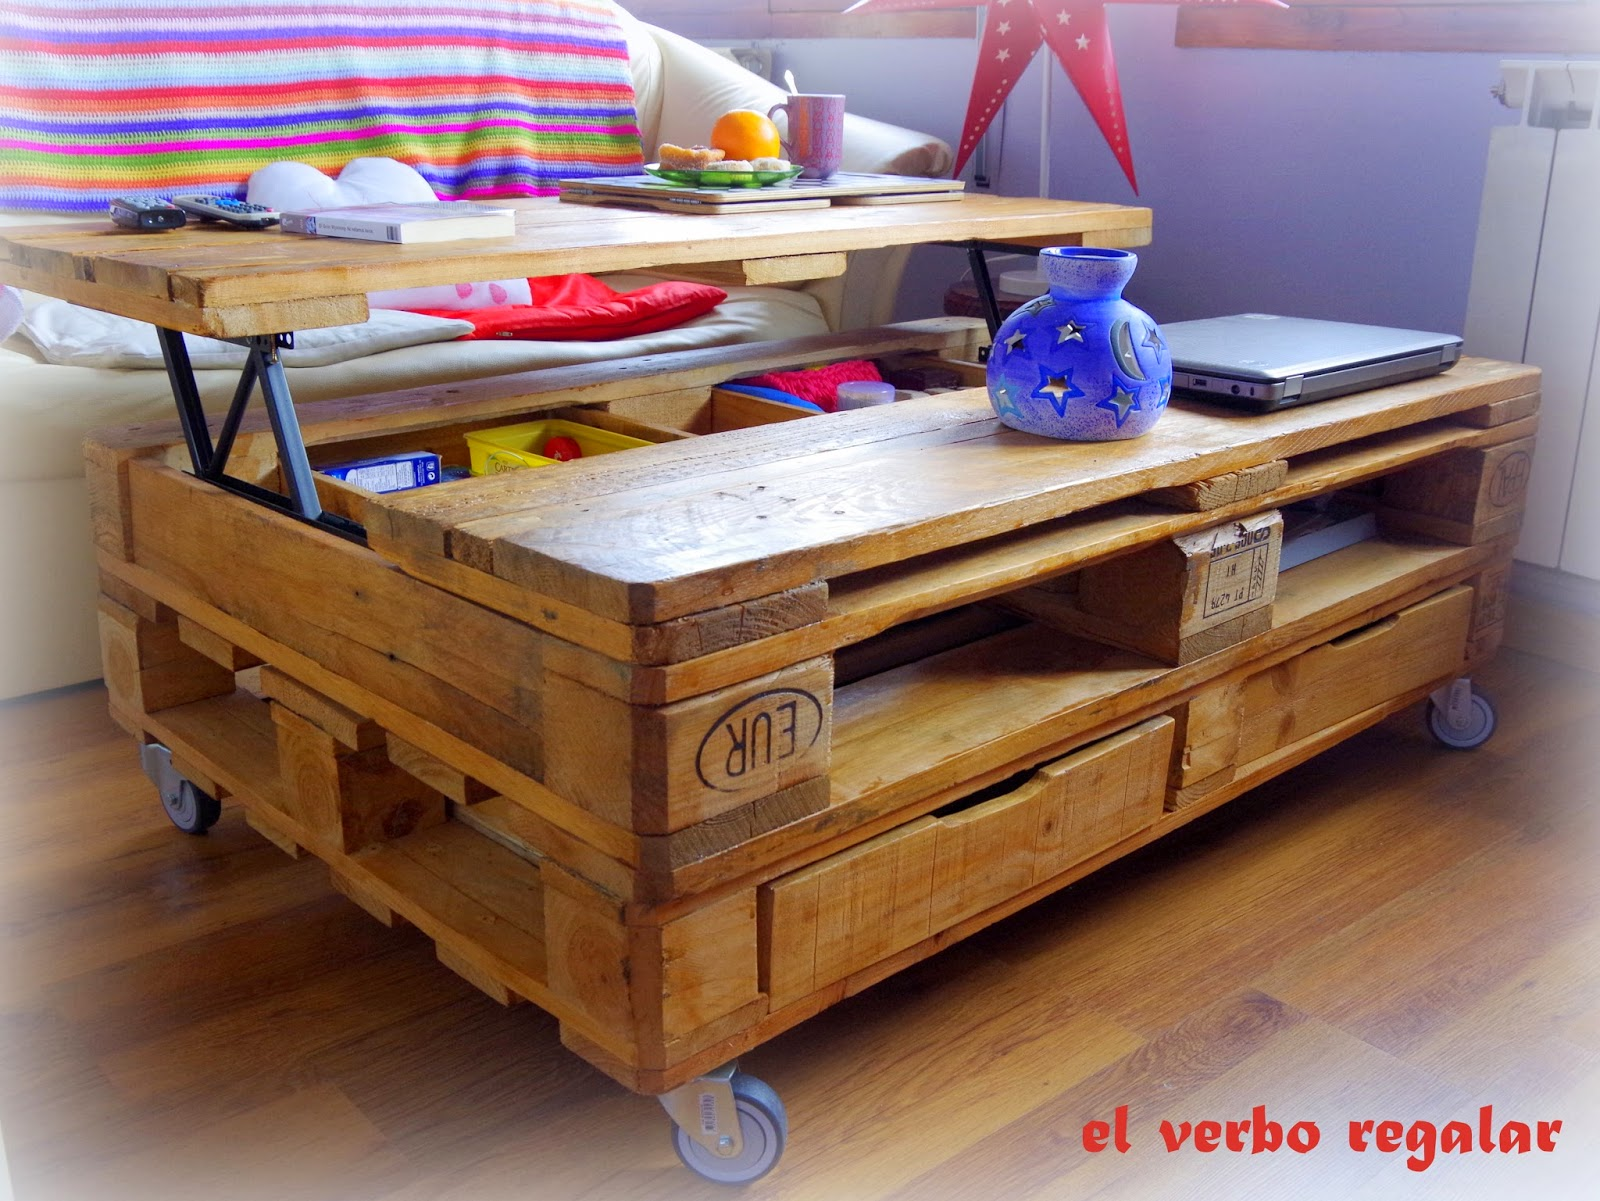 El verbo regalar mesa elevable con palets ideas diy caseras - Mesa de salon elevable ...